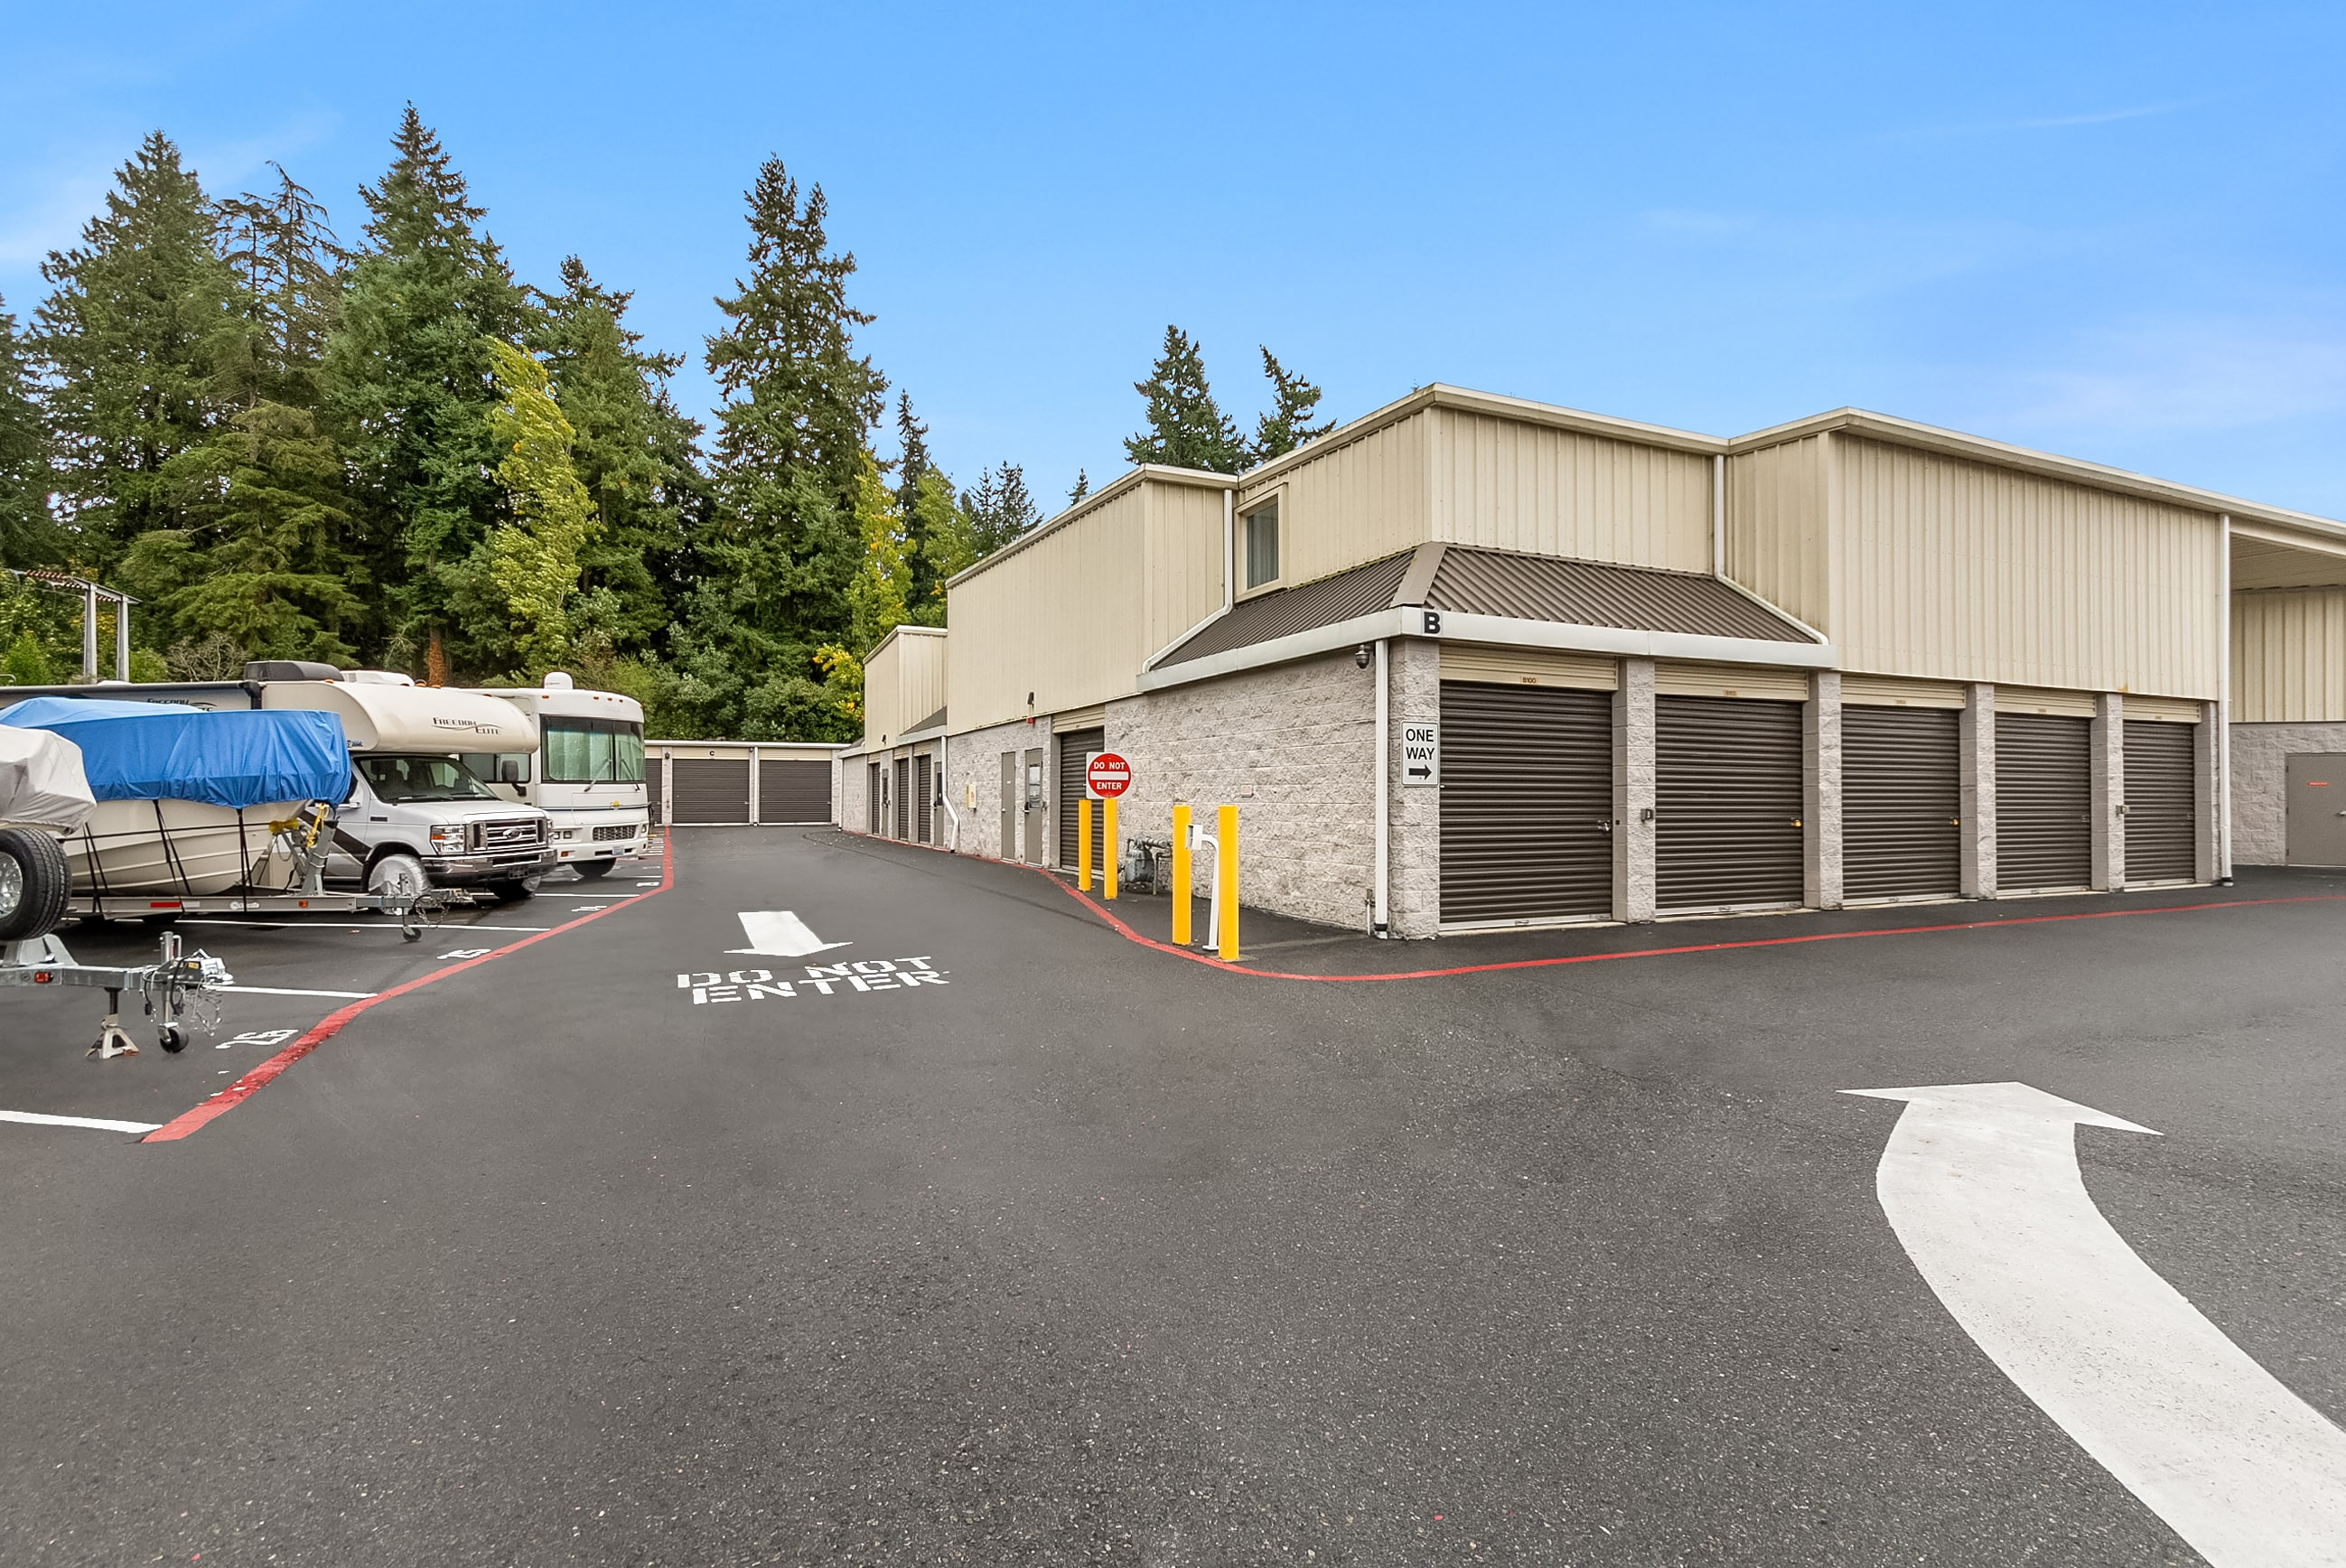 Exterior Self Storage Mercer Island, WA